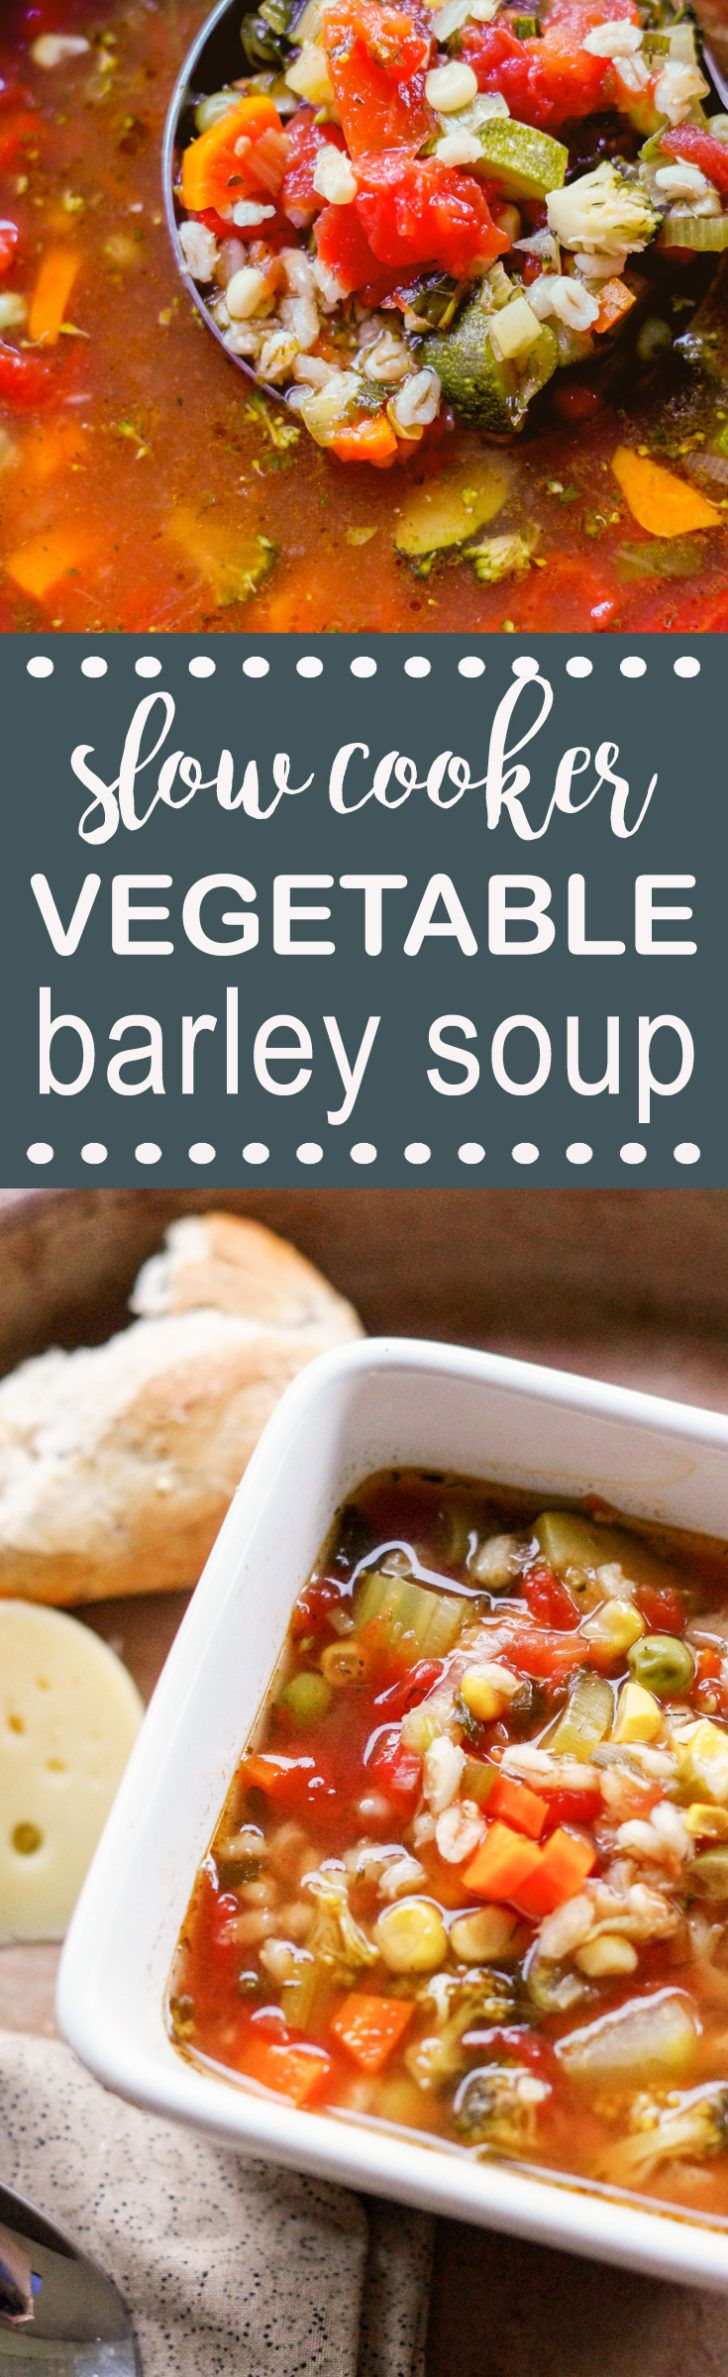 Prep ahead slow cooker vegetable barley soup made with seven vegetables - and vegetable broth with pearl barley for protein.  Sooooo good! This soup can be made ahead by prepping the vegetables.  Just throw it in the crockpot the day of your meal - and dinner is done!